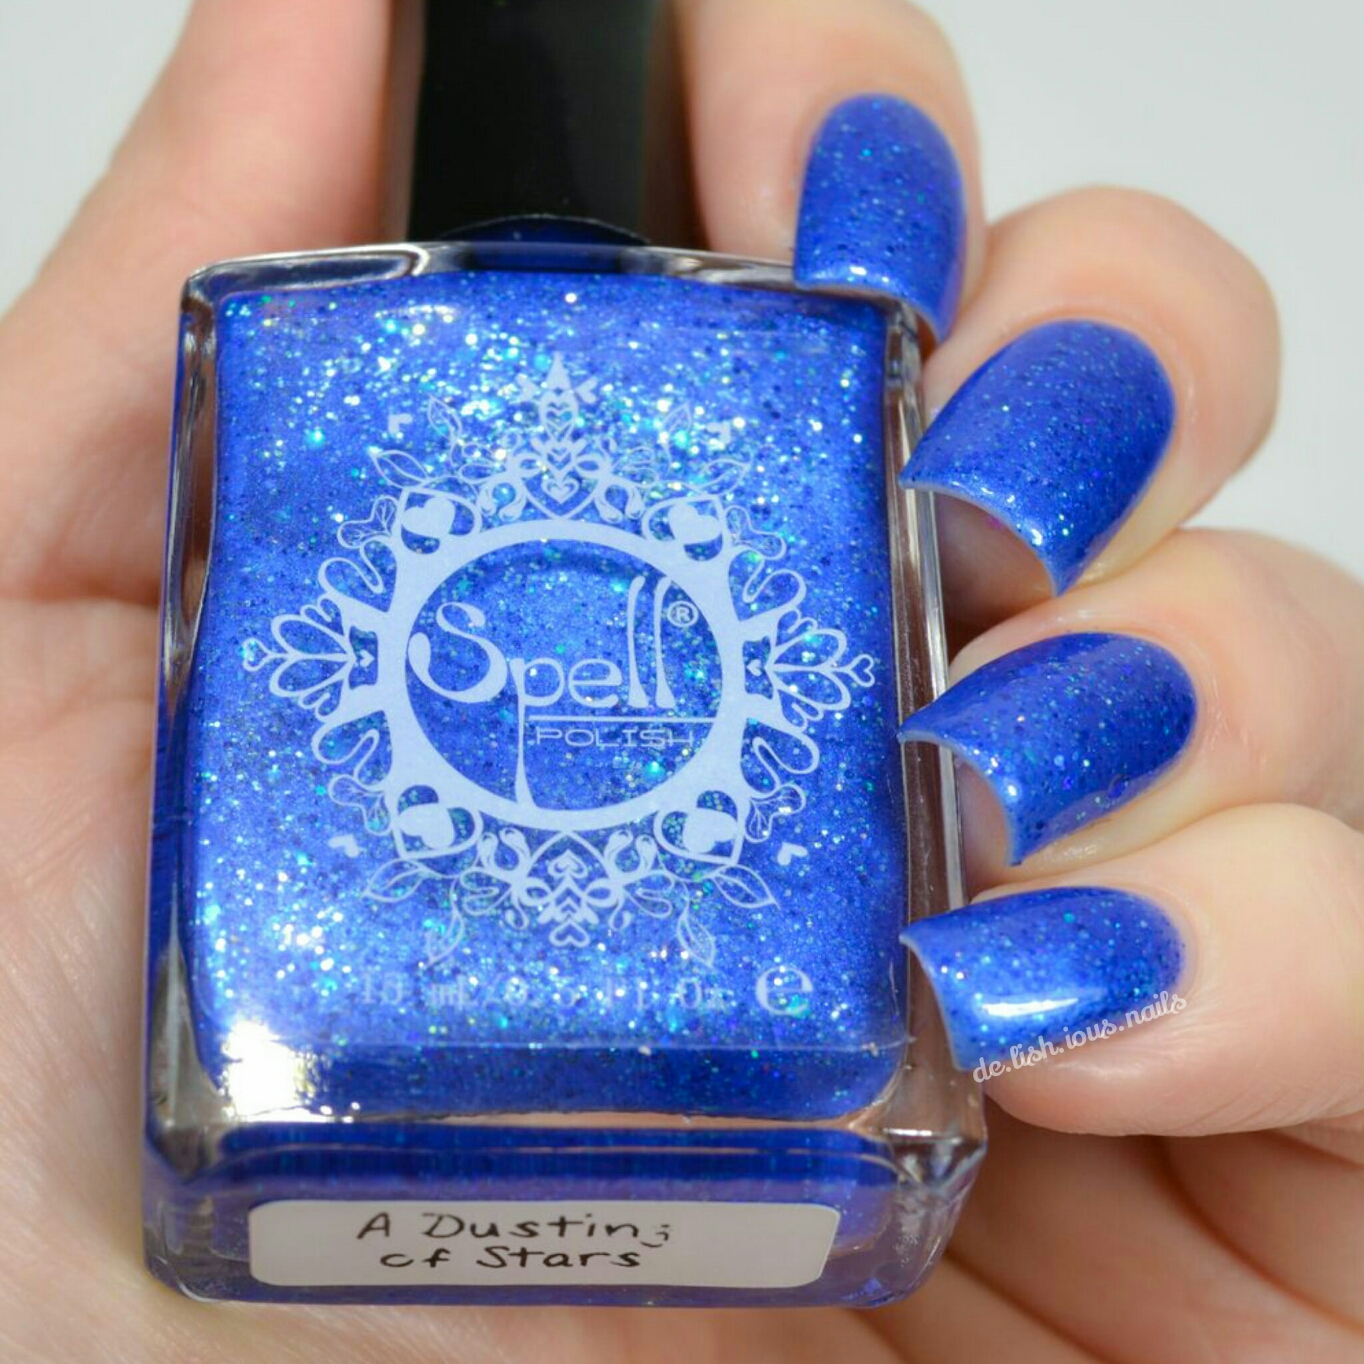 Spell_polish_a_dusting_of_stars_2